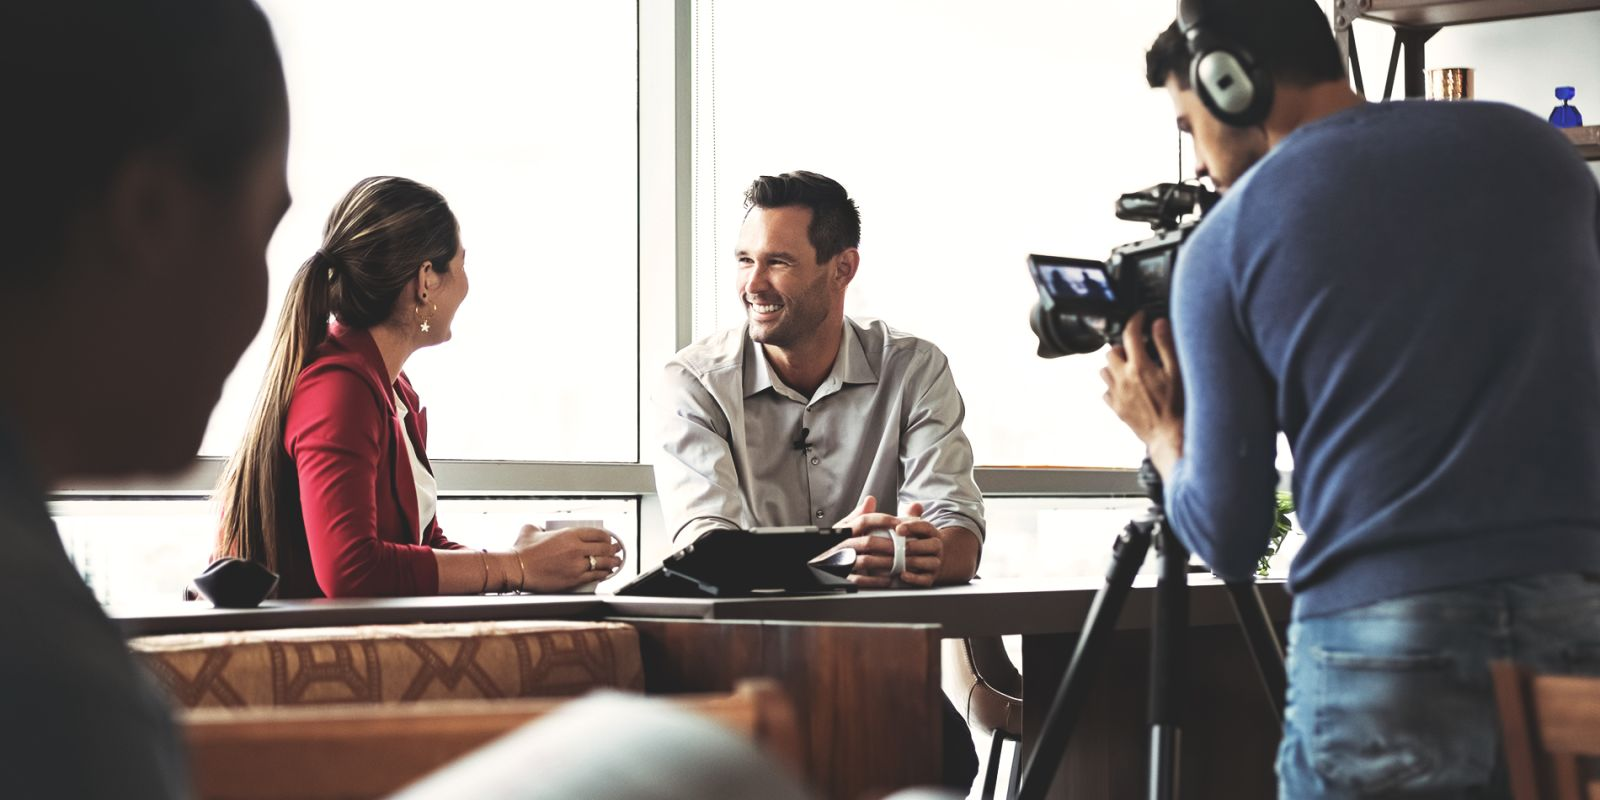 Image of man and woman chatting at desk while being filmed by cameraman for B2B video production company page